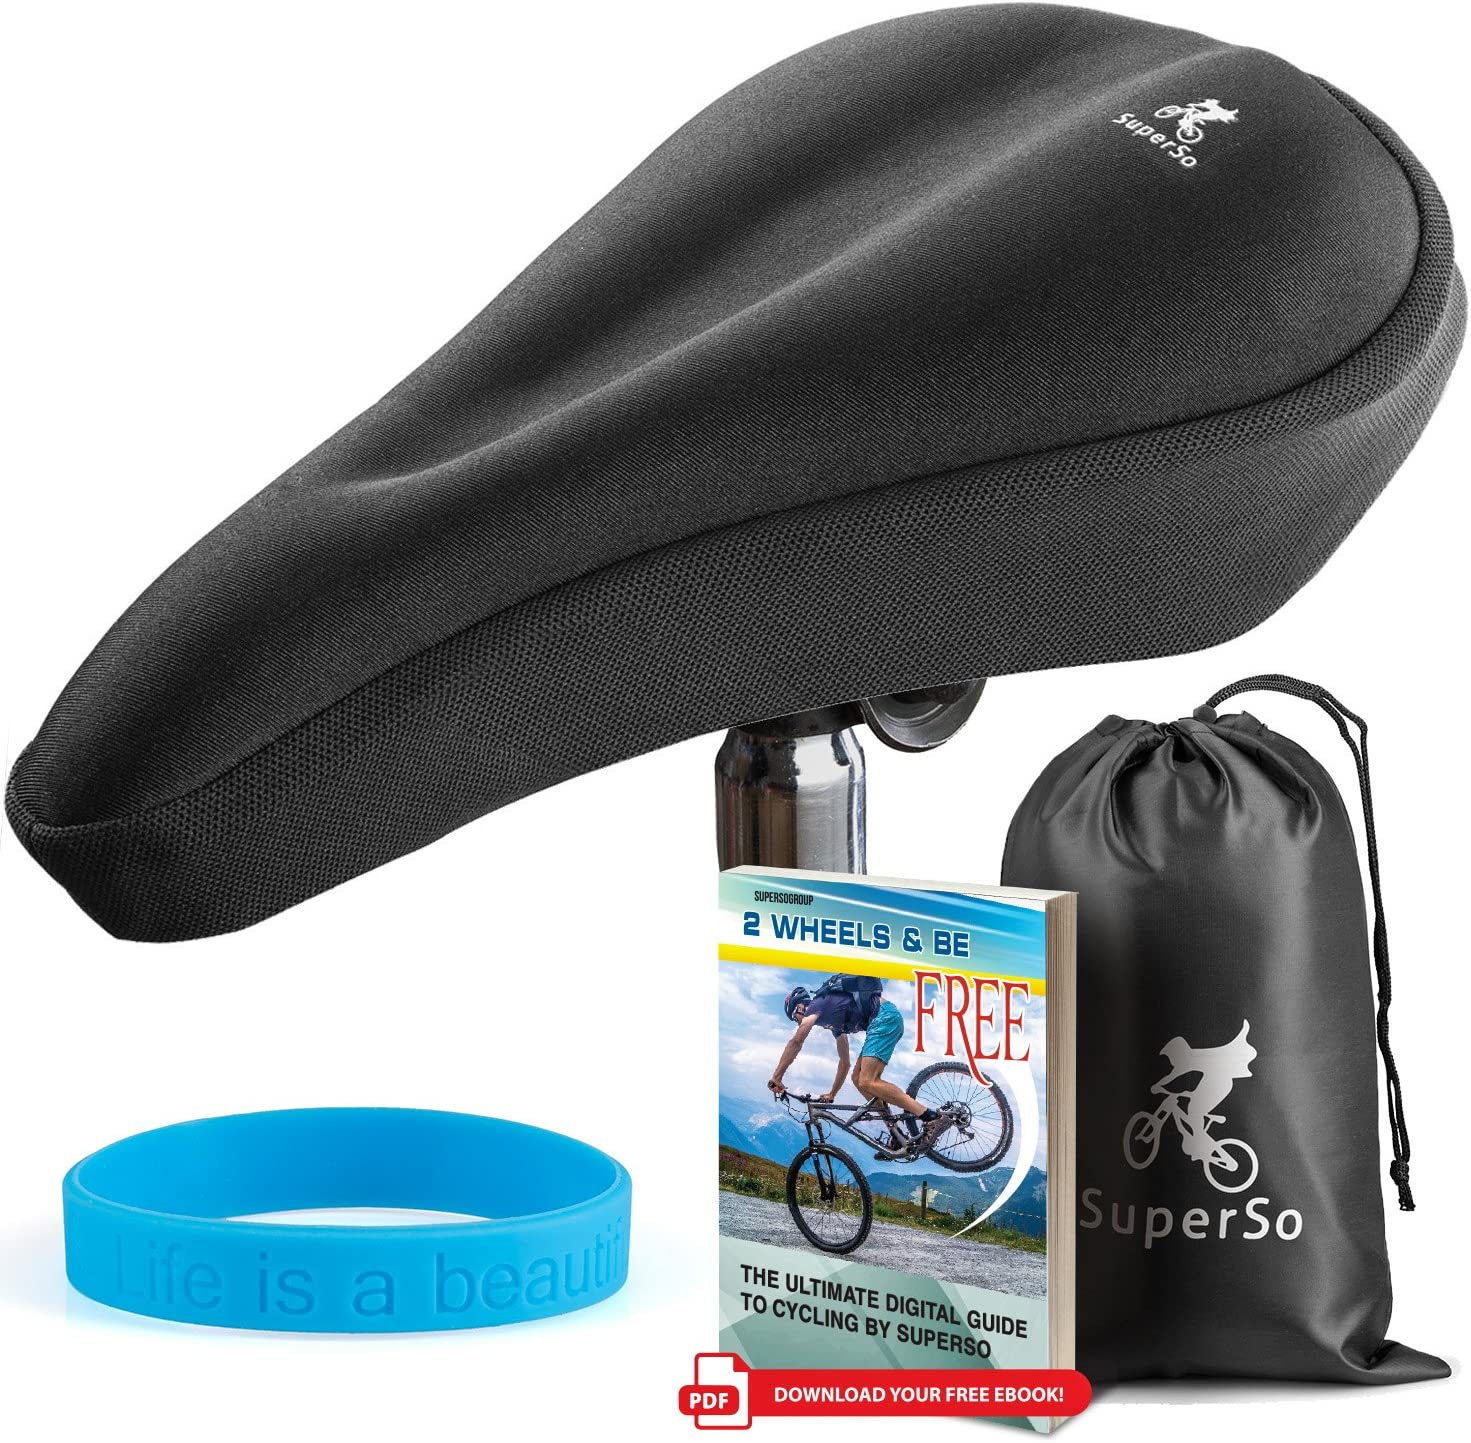 Comfort Extra Soft Padded Gel Bike Seat Covers Bicycle Saddle Pad for Women and Men LuxoBike Exercise Bike Seat Cushion Cover Great for Indoor Cycling Class and Stationary Bikes Spin Bike